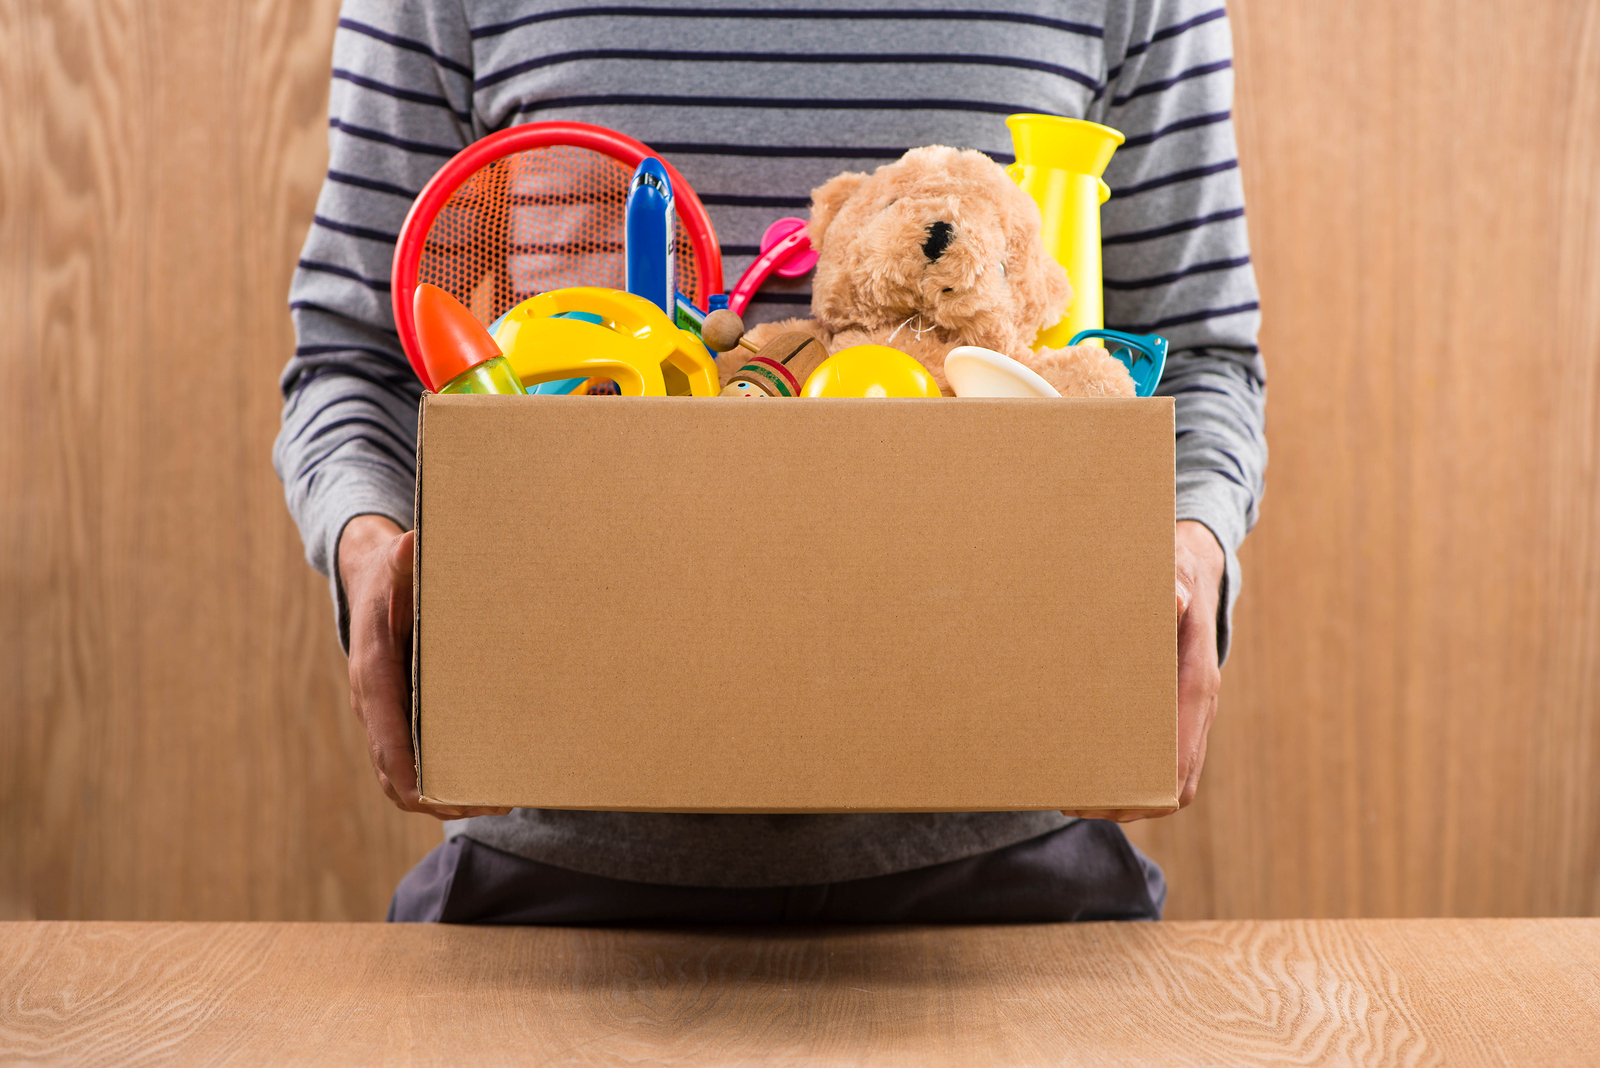 Volunteer Holding Donation Box With Toys